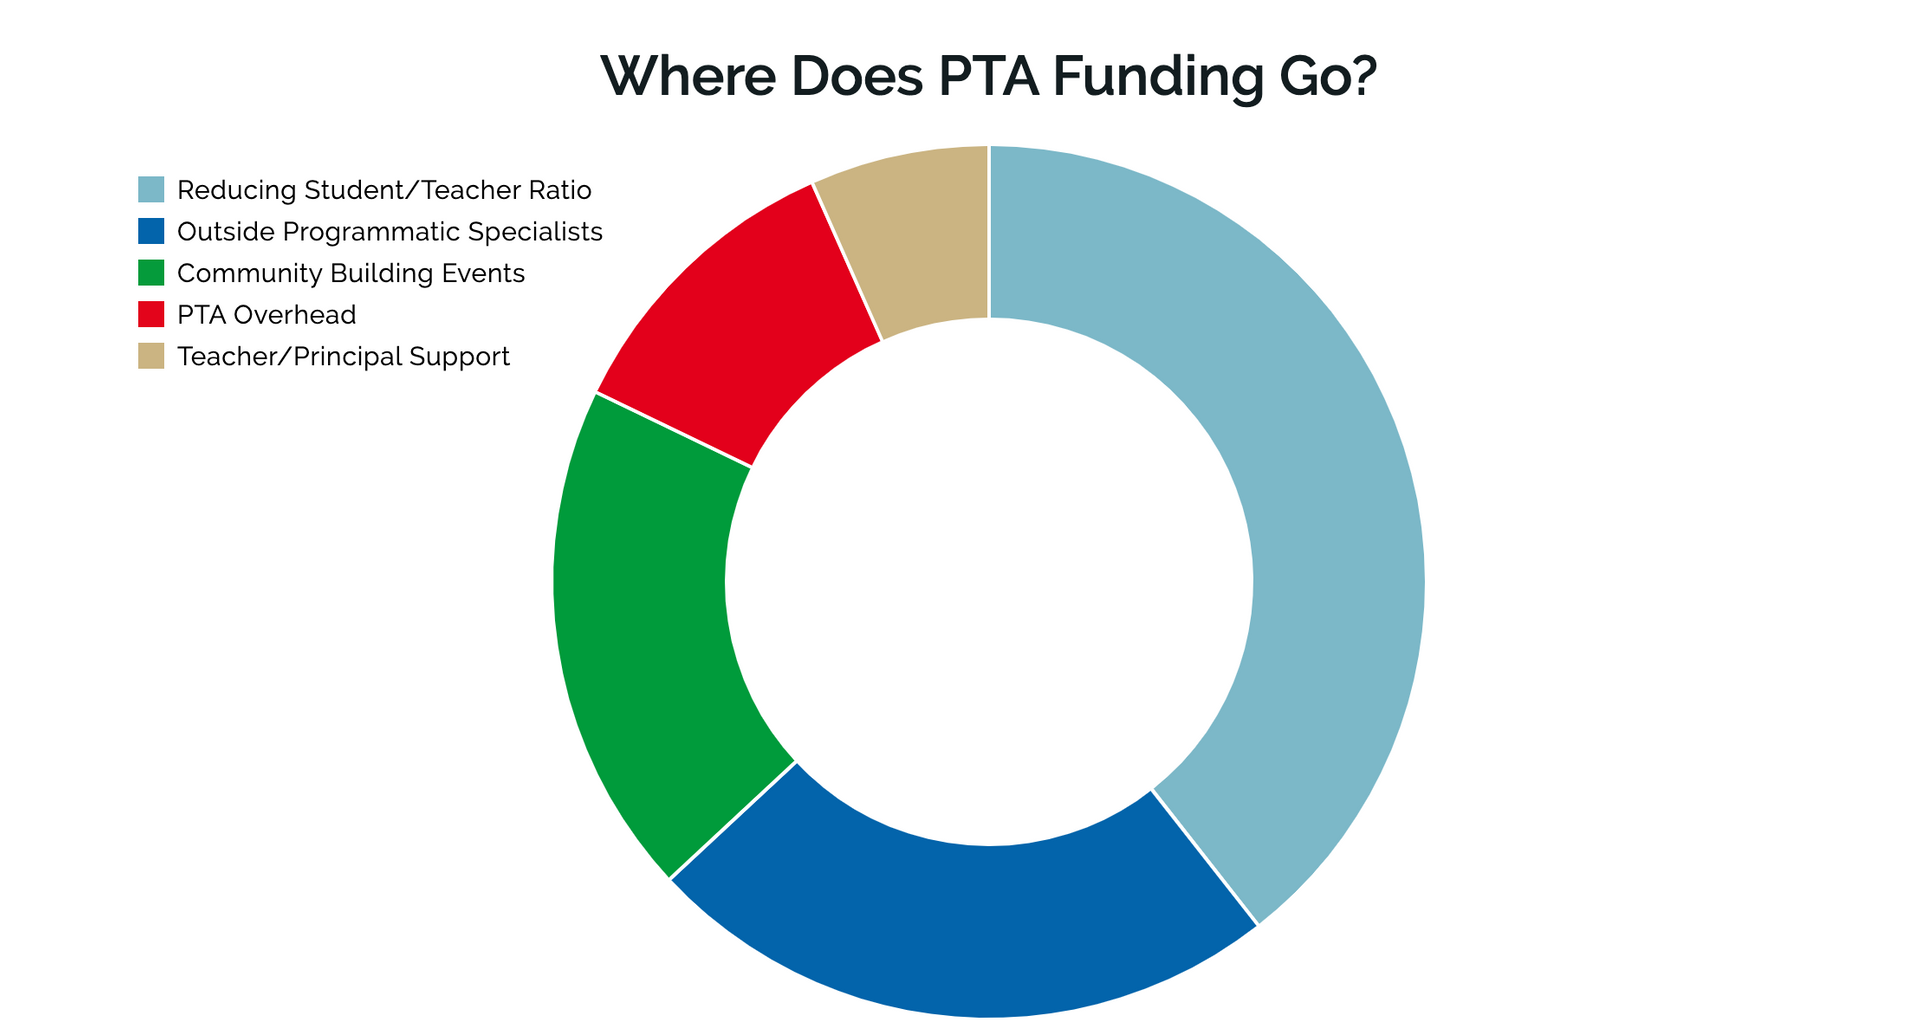 Where does PTA funding go?